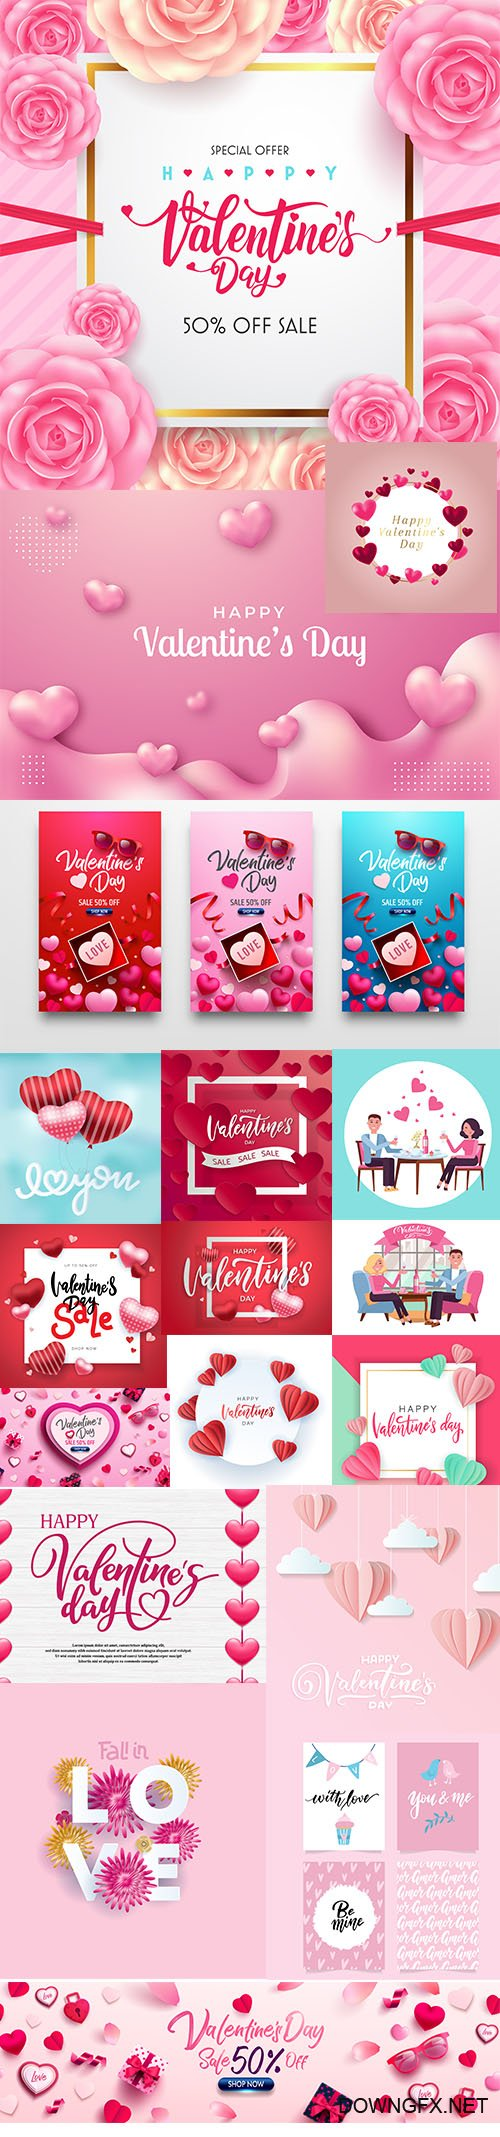 Set of Romantic Valentines Day Illustrations Vol 6